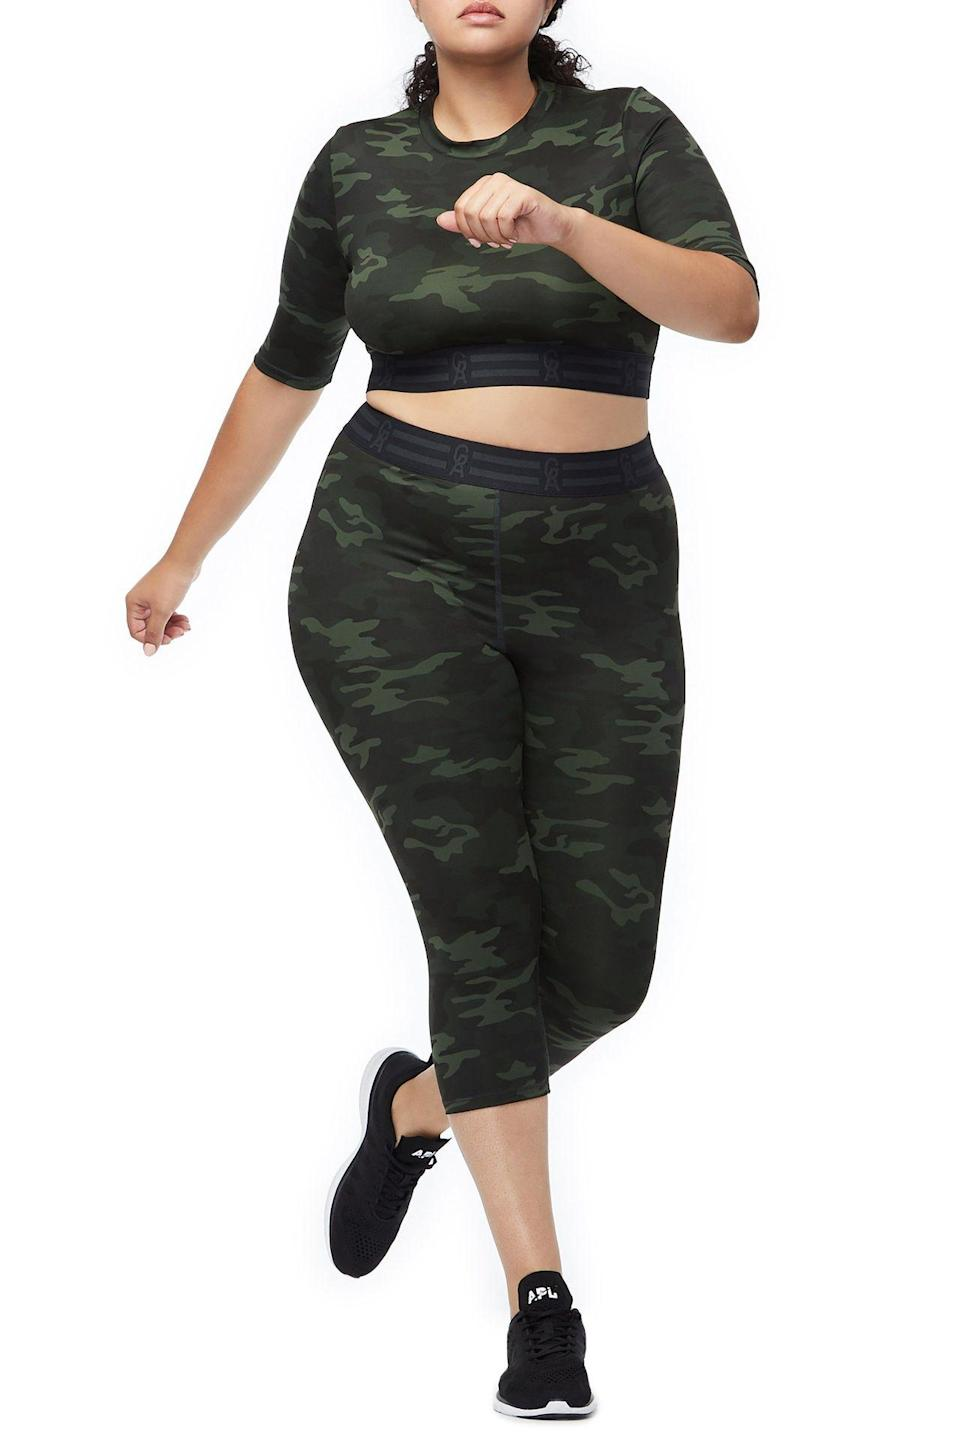 "<p>This crop-top camo set is not only supercute, it offers great support to fit your curves perfectly.<br><a href=""https://fave.co/2SxmYPe"" rel=""nofollow noopener"" target=""_blank"" data-ylk=""slk:Shop it:"" class=""link rapid-noclick-resp""><strong>Shop it:</strong> </a>The Icon Crop Top , $79 (take 25% off with code EXTRA25), <a href=""https://fave.co/2SxmYPe"" rel=""nofollow noopener"" target=""_blank"" data-ylk=""slk:goodamerican.com"" class=""link rapid-noclick-resp"">goodamerican.com</a><br><a href=""https://fave.co/2AwWqqp"" rel=""nofollow noopener"" target=""_blank"" data-ylk=""slk:Shop it:"" class=""link rapid-noclick-resp""><strong>Shop it:</strong> </a>The Icon Capri Legging, $85 (take 25% off with code EXTRA25),<a href=""https://fave.co/2AwWqqp"" rel=""nofollow noopener"" target=""_blank"" data-ylk=""slk:goodamerican.com"" class=""link rapid-noclick-resp""> goodamerican.com</a> </p>"